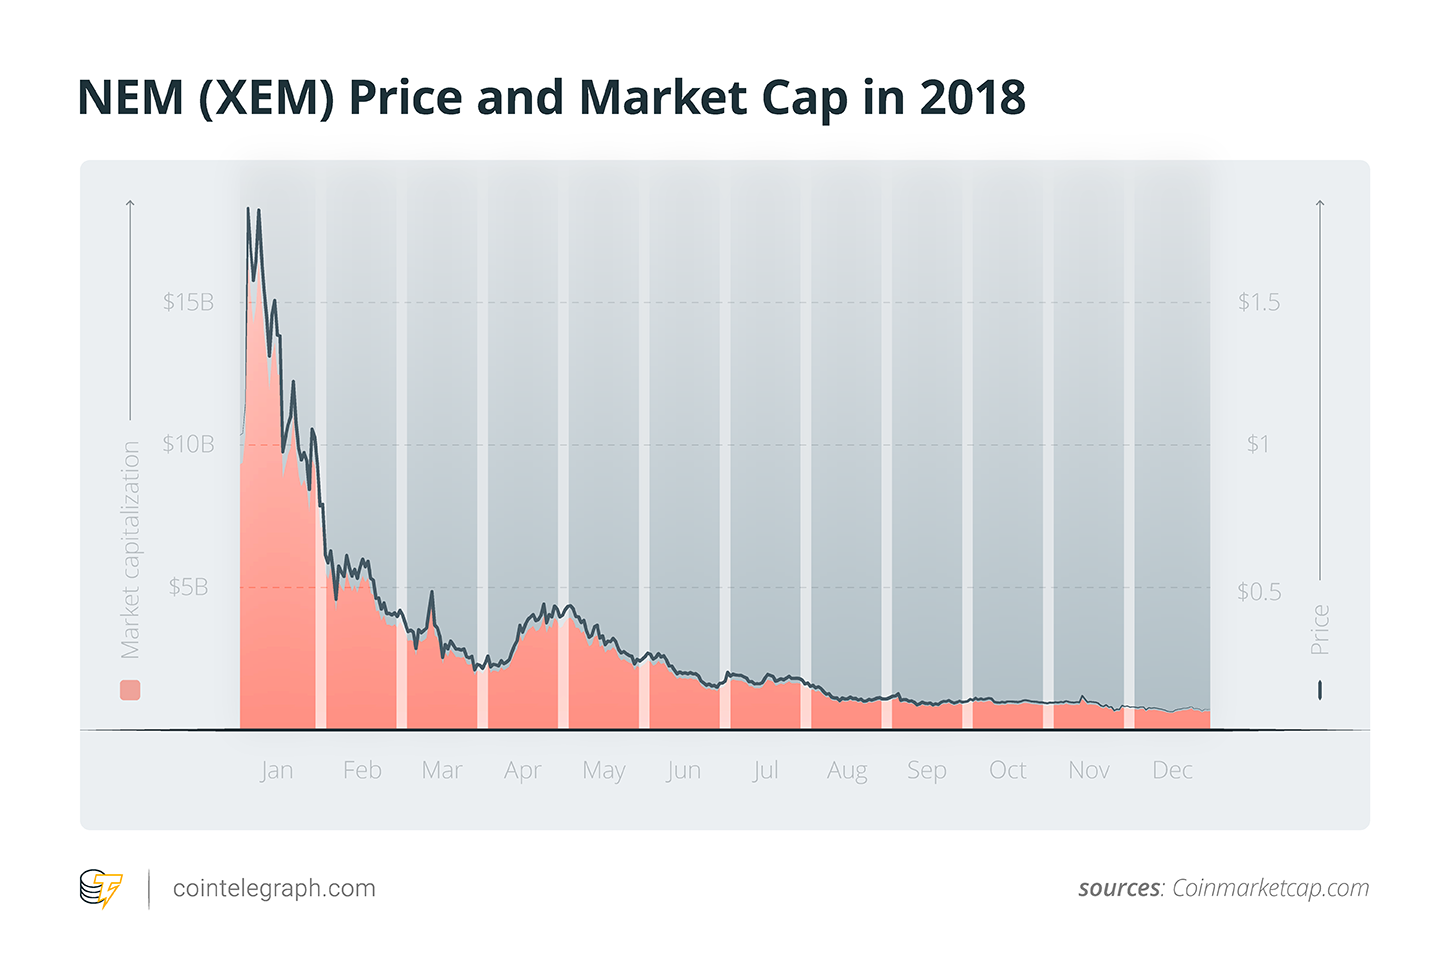 xem cryptocurrency price chart